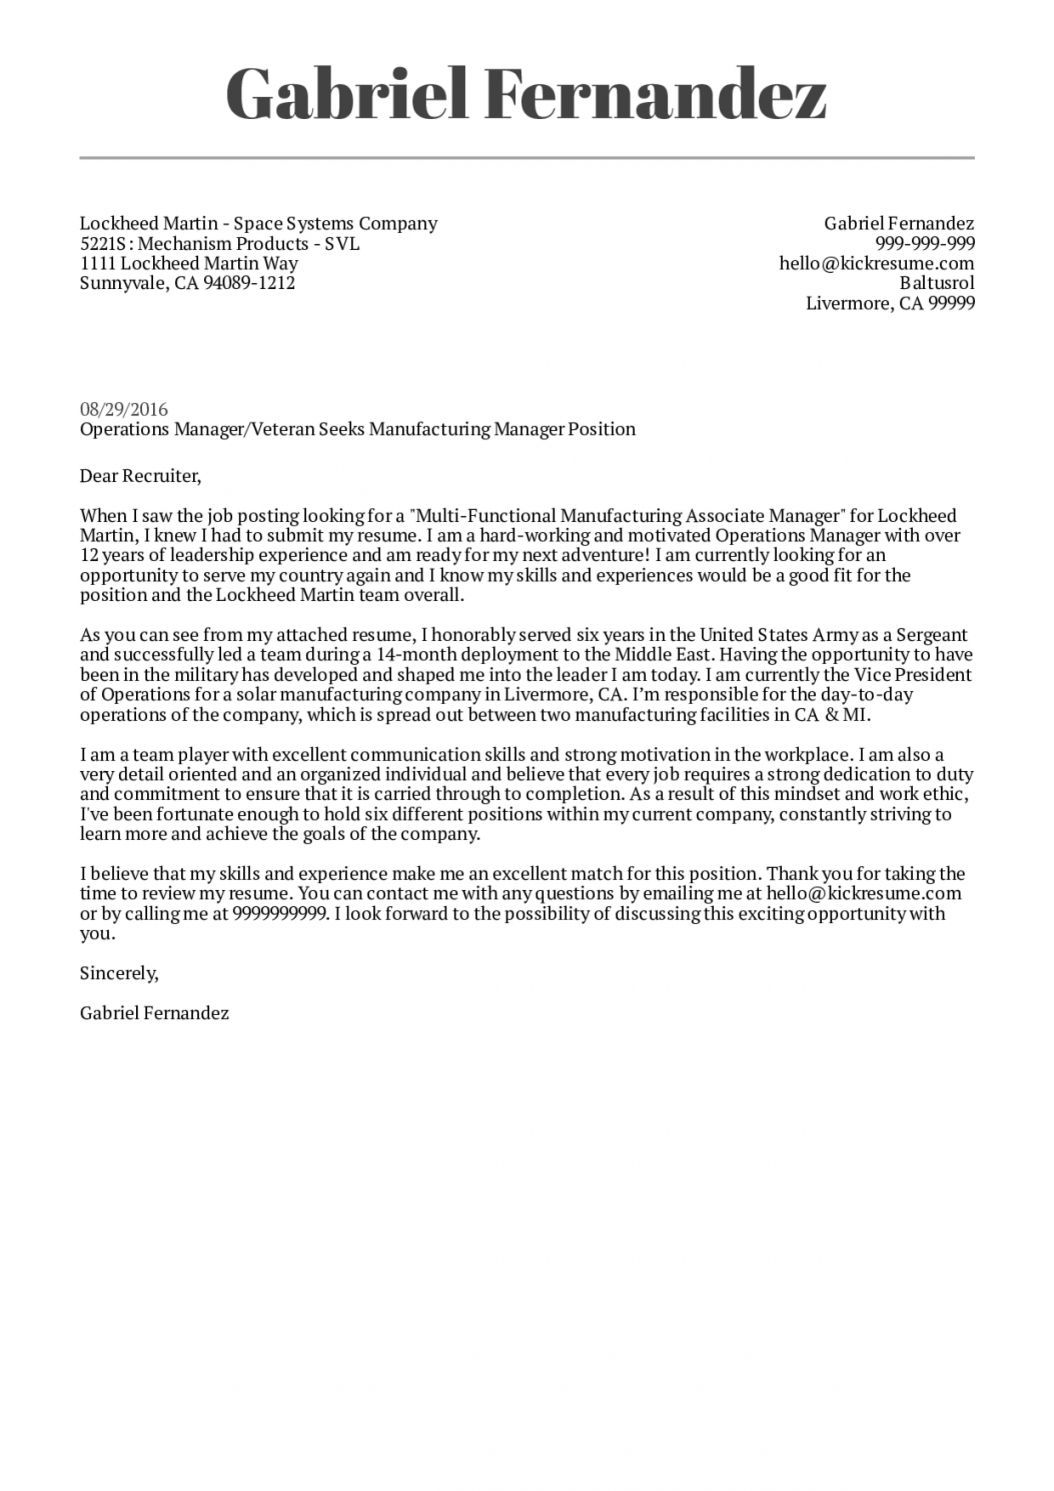 Get Our Sample of Veteran Cover Letter Template for Free